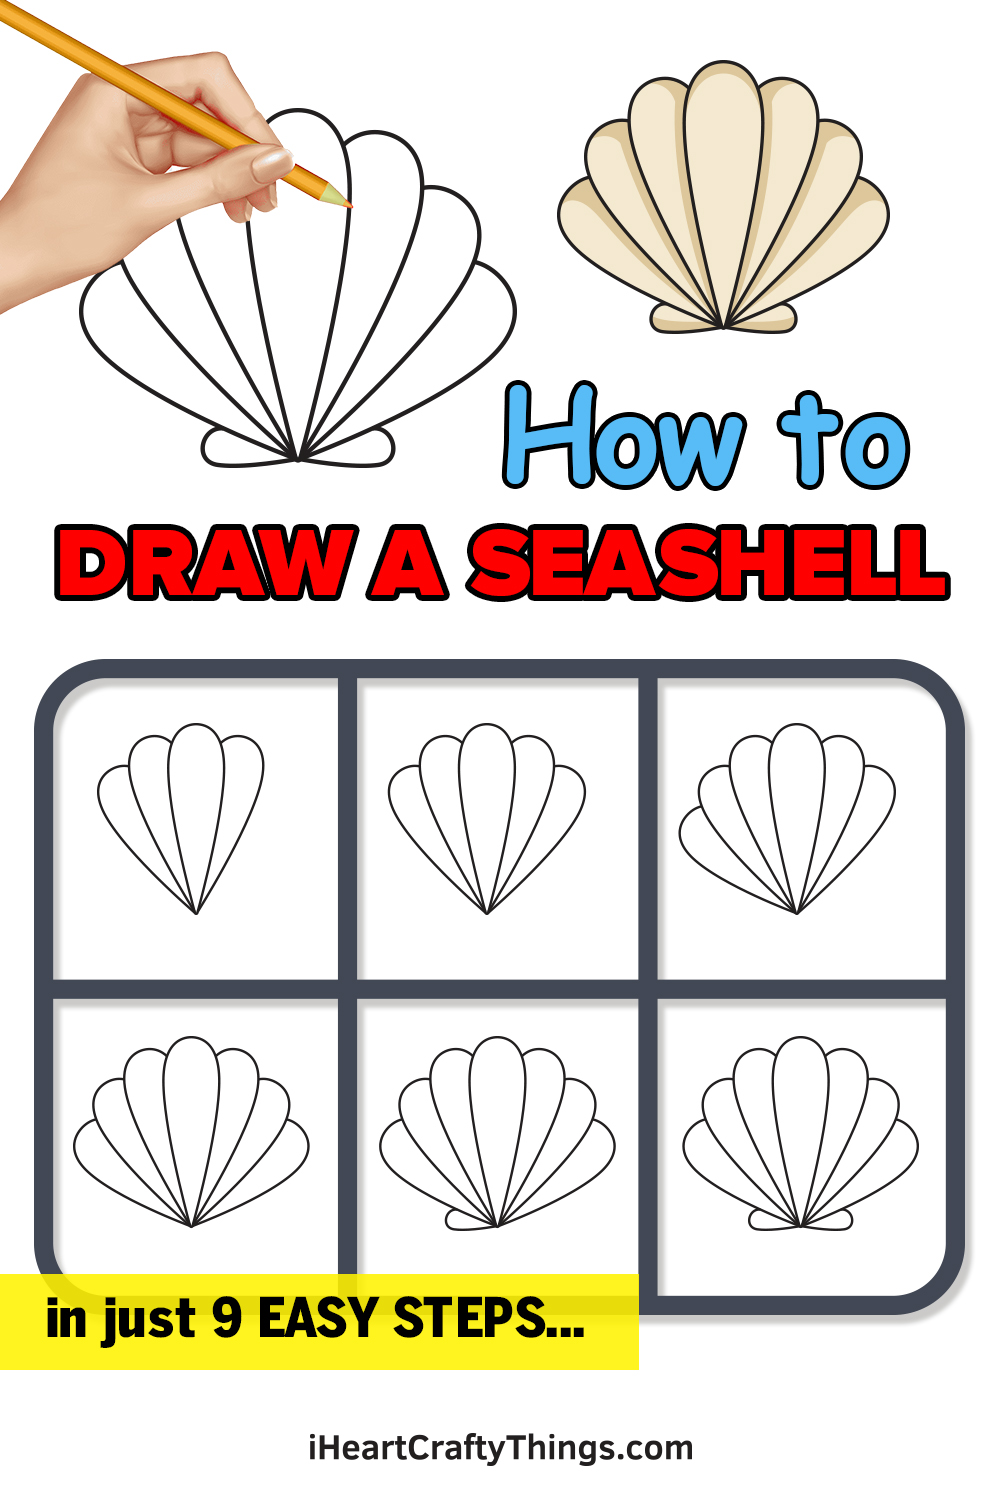 how to draw a seashell in 9 easy steps